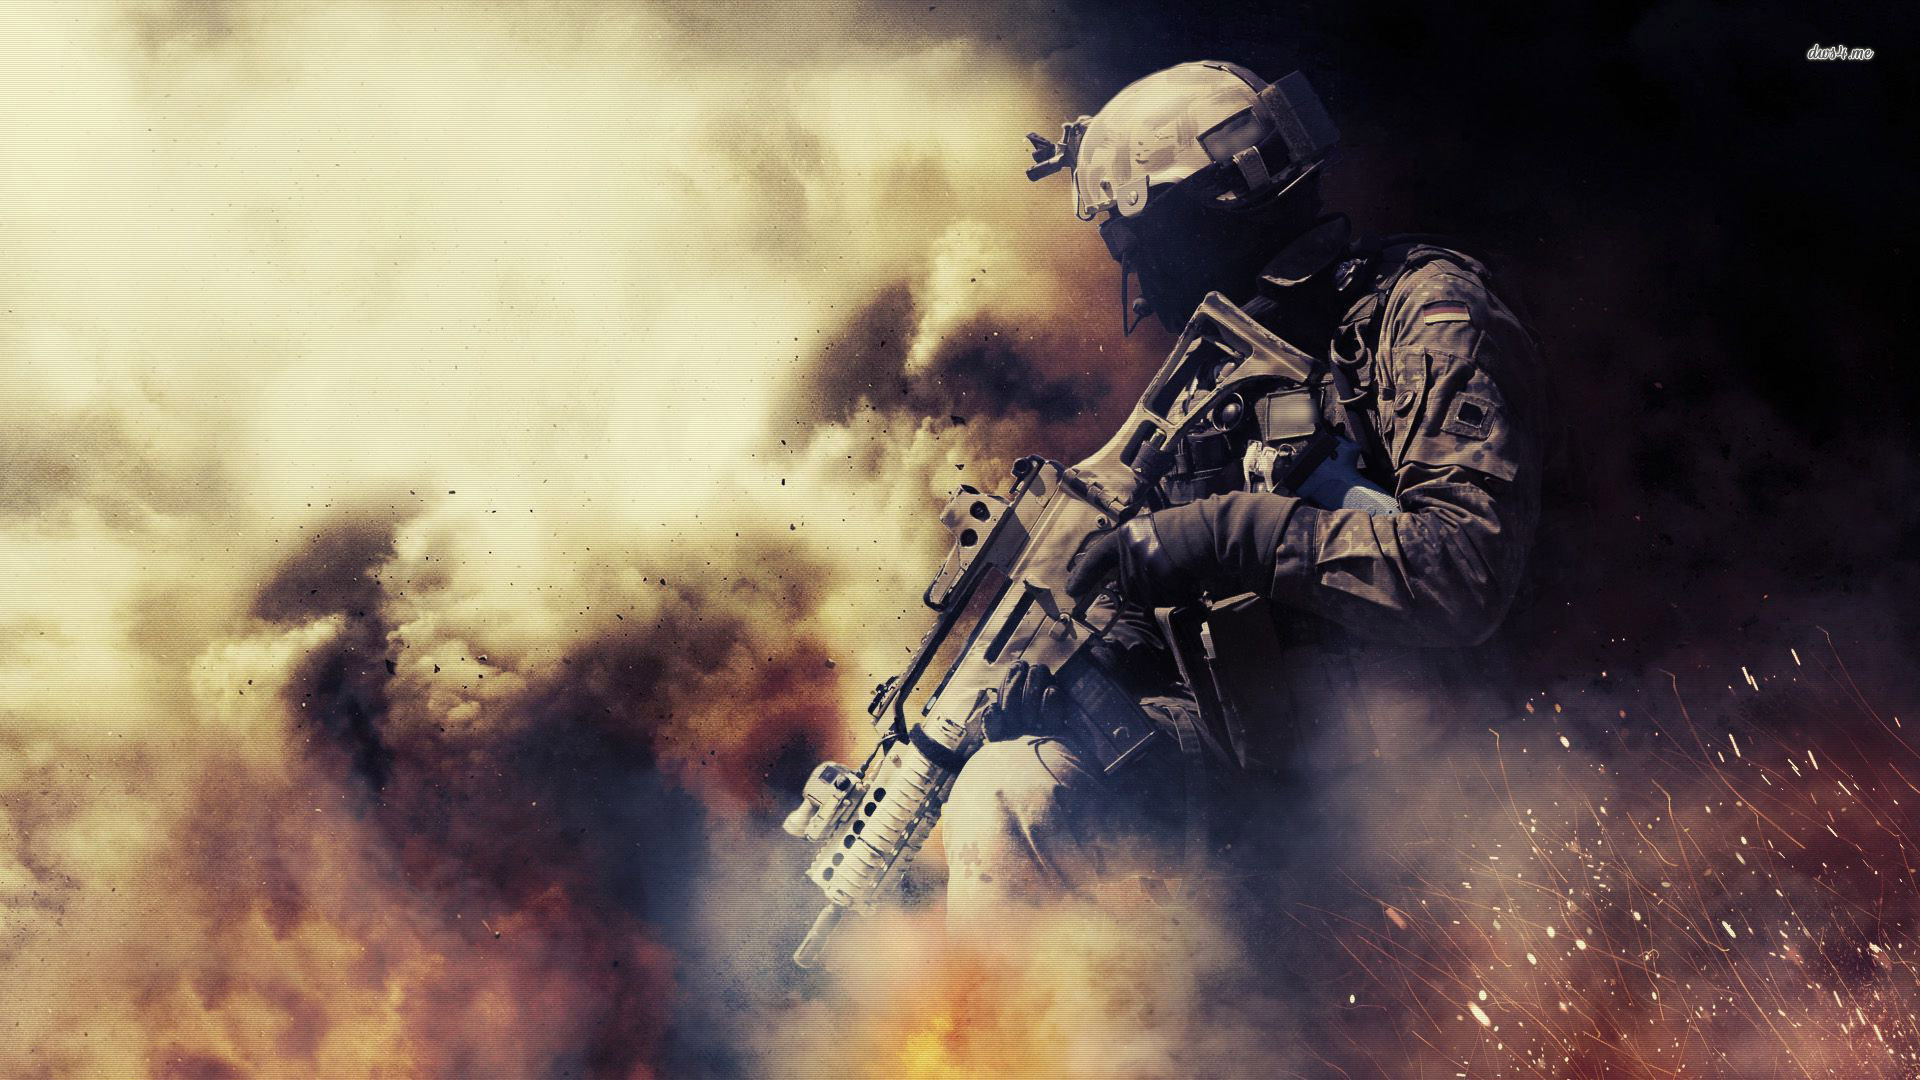 View And Download Medal of Honor Warfighter Wallpapers